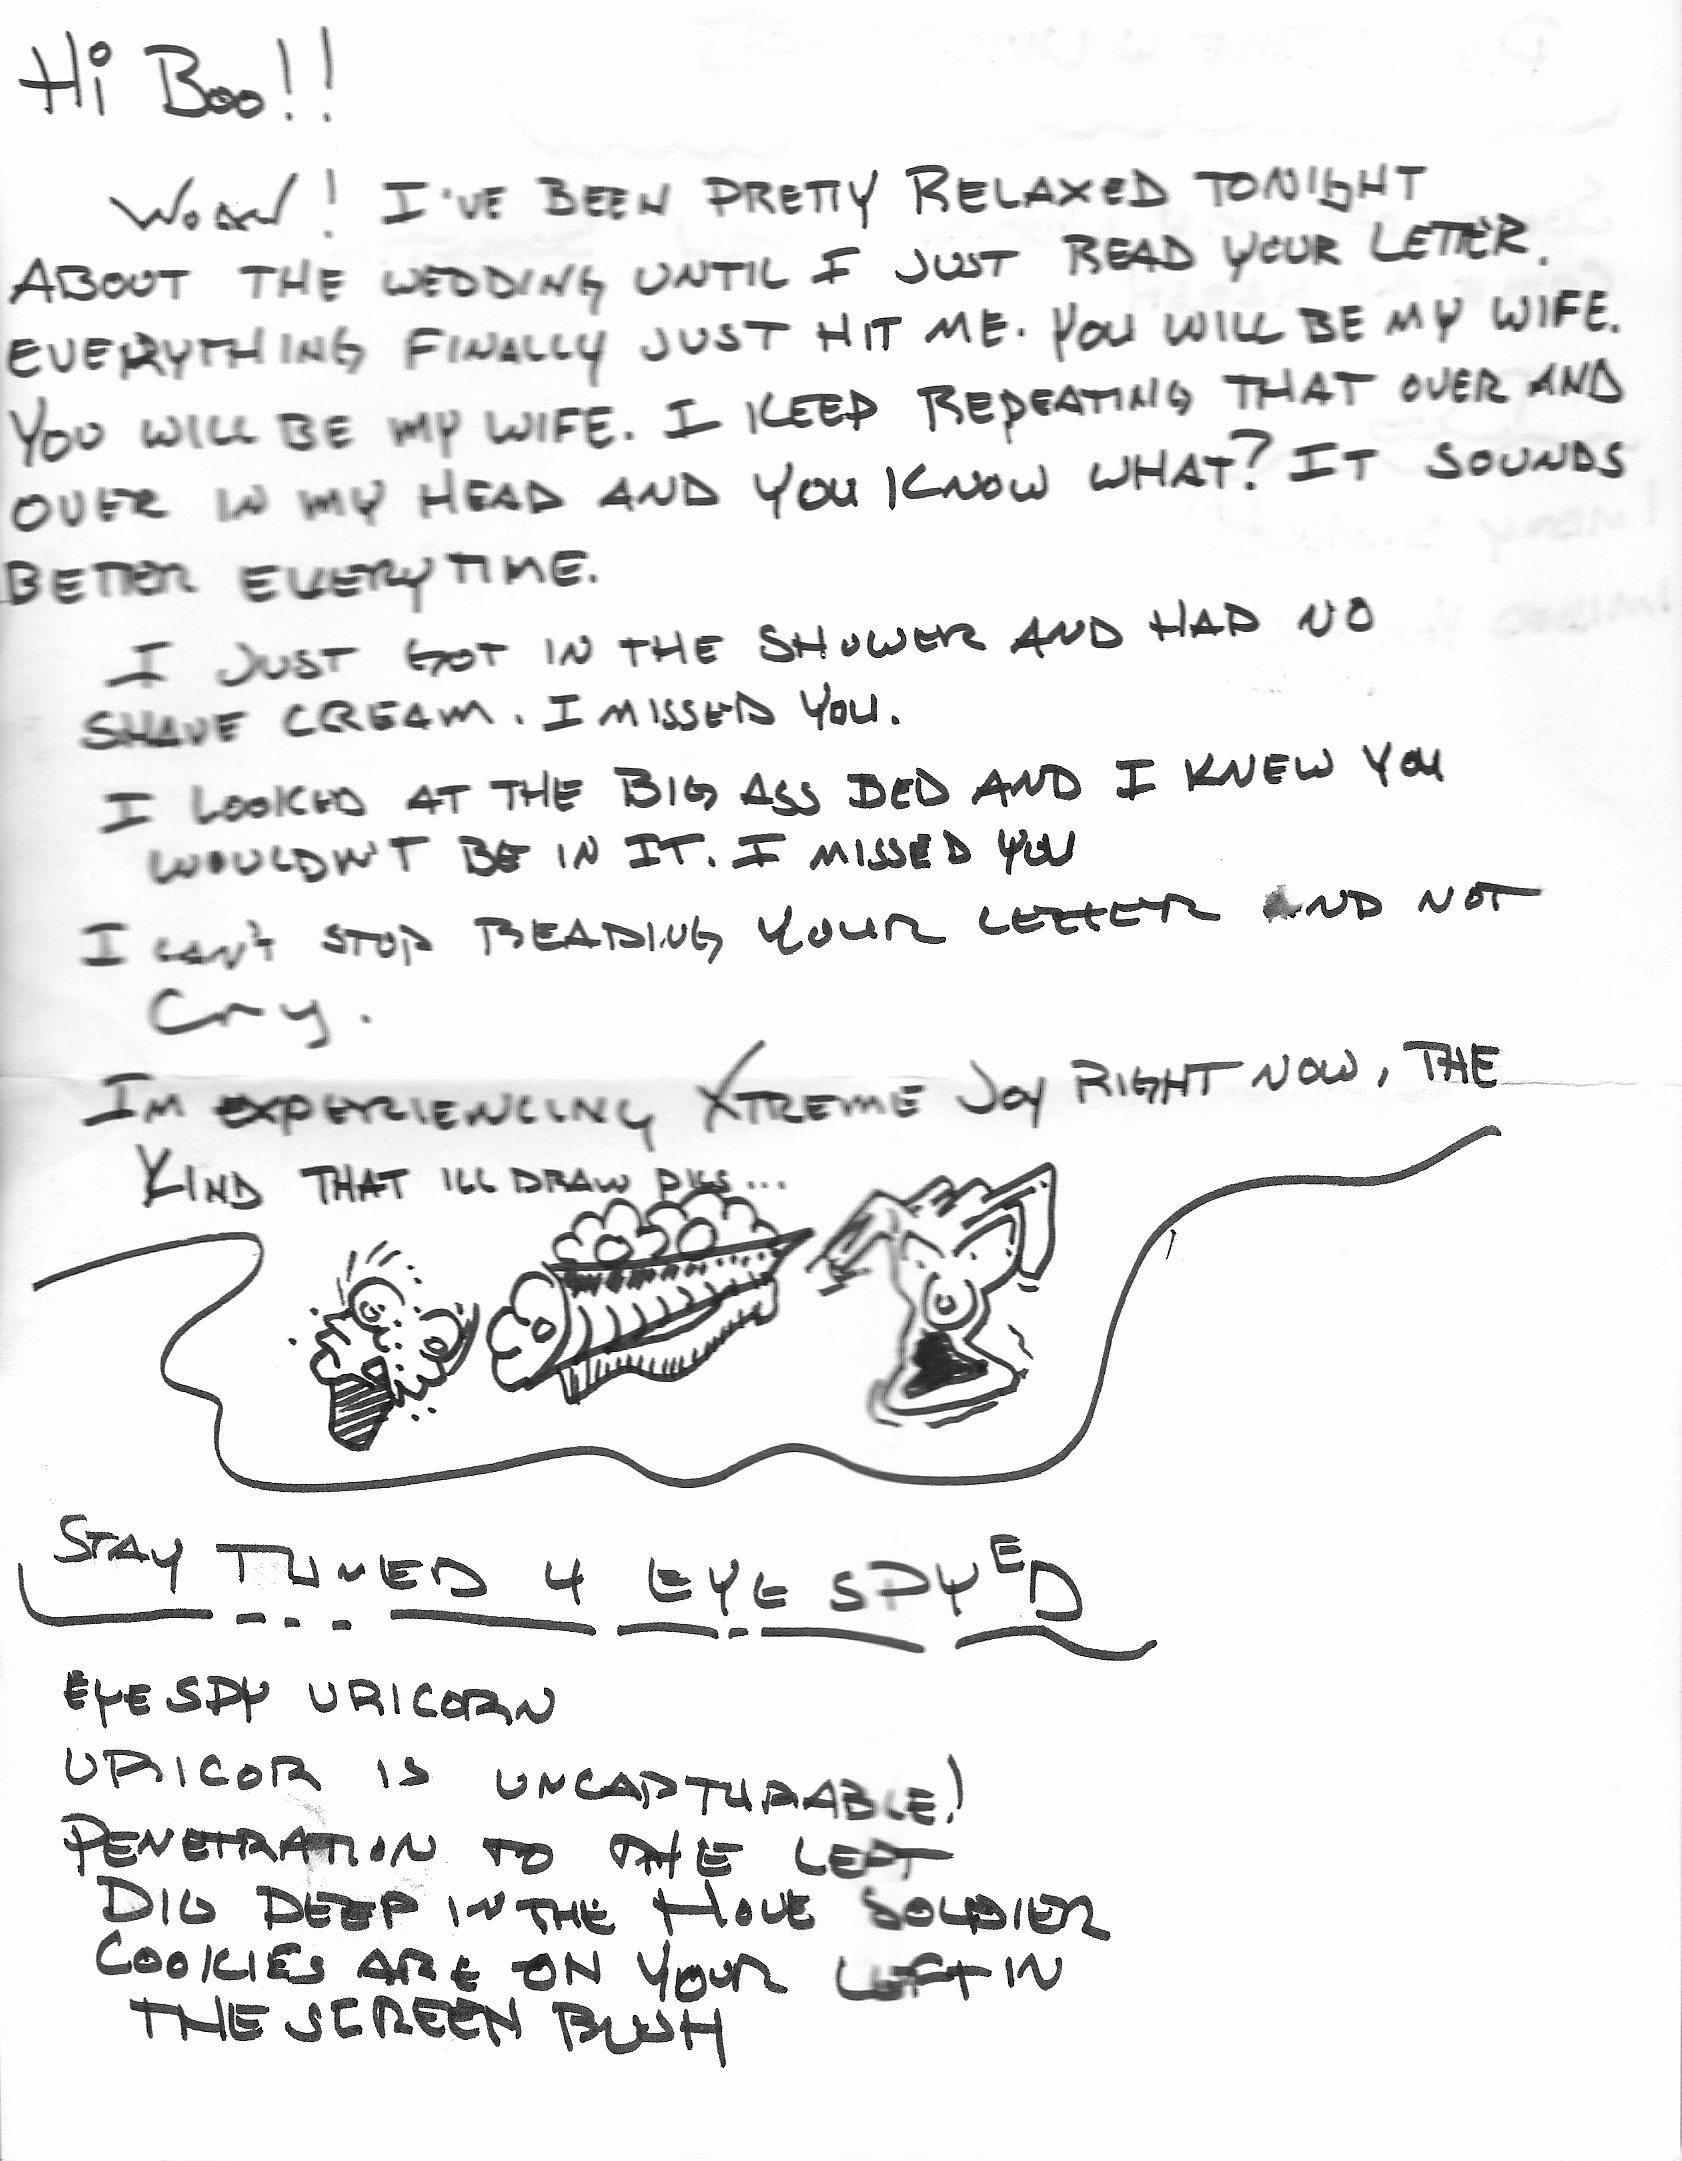 Love Letter to Wife Luxury An Alcohol and Ambien Fueled Love Letter to My Wife Pics